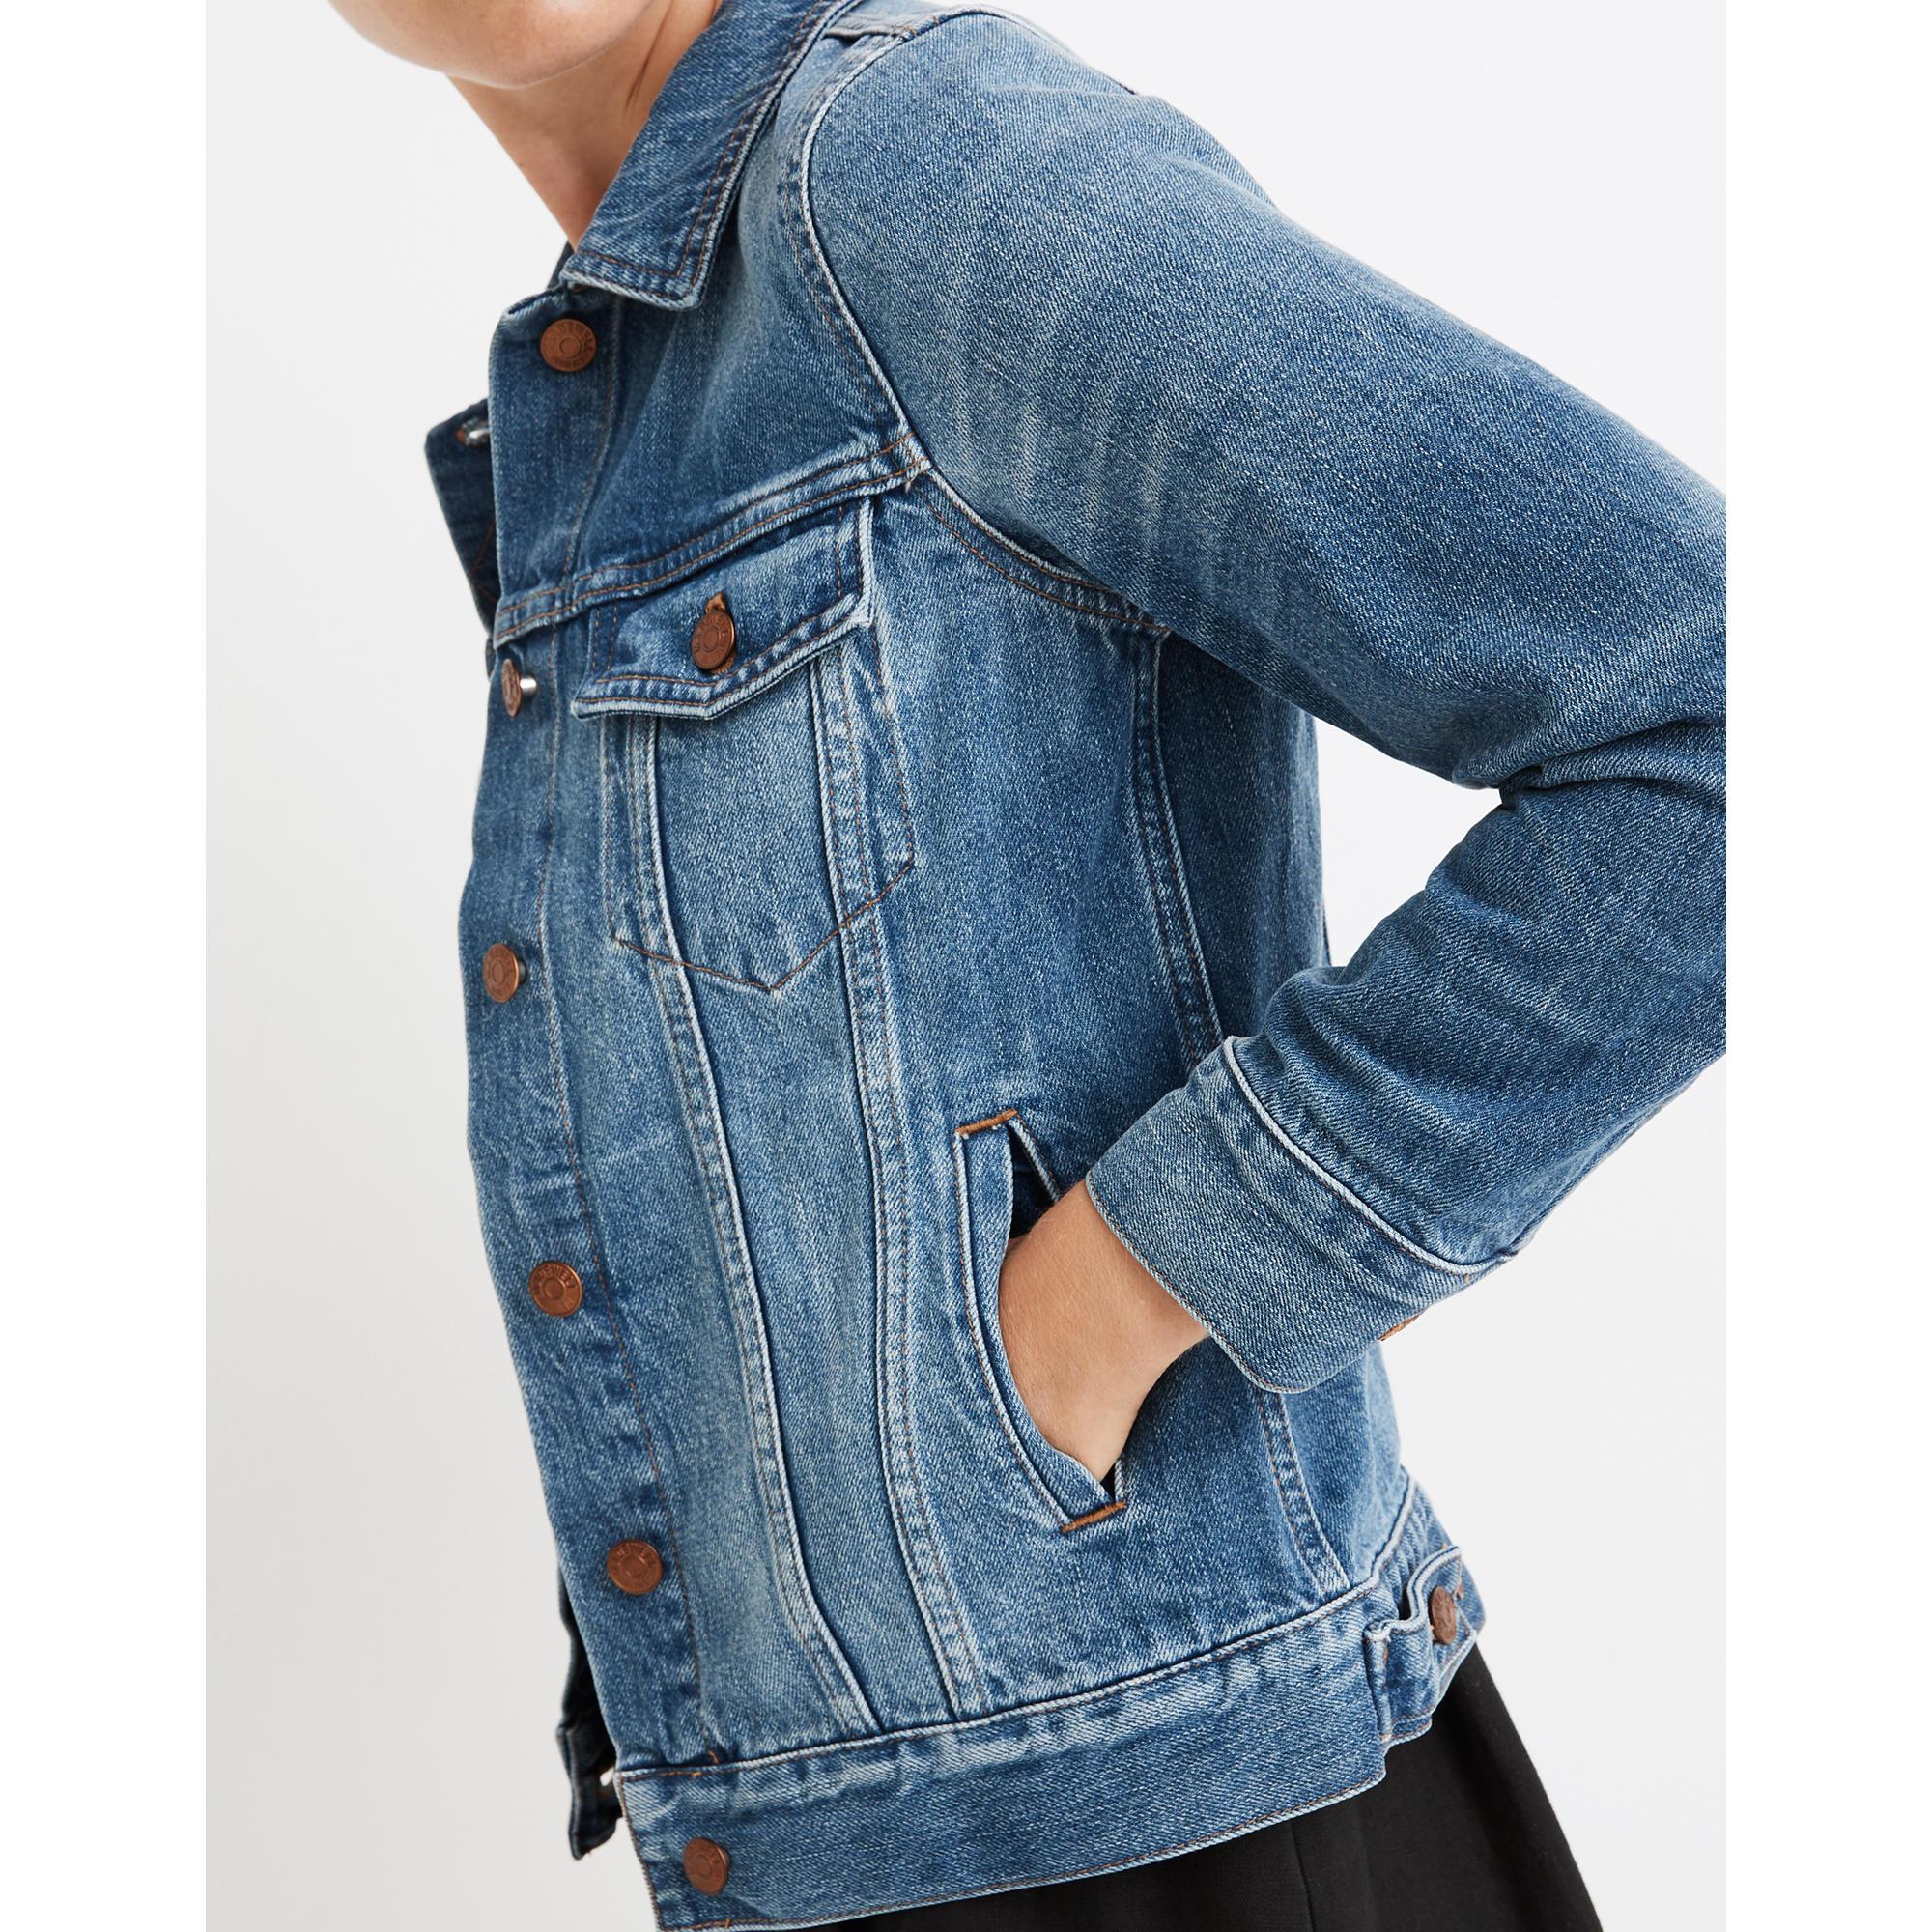 The Jean Jacket in Pinter Wash : shopmadewell gifts | Madewell